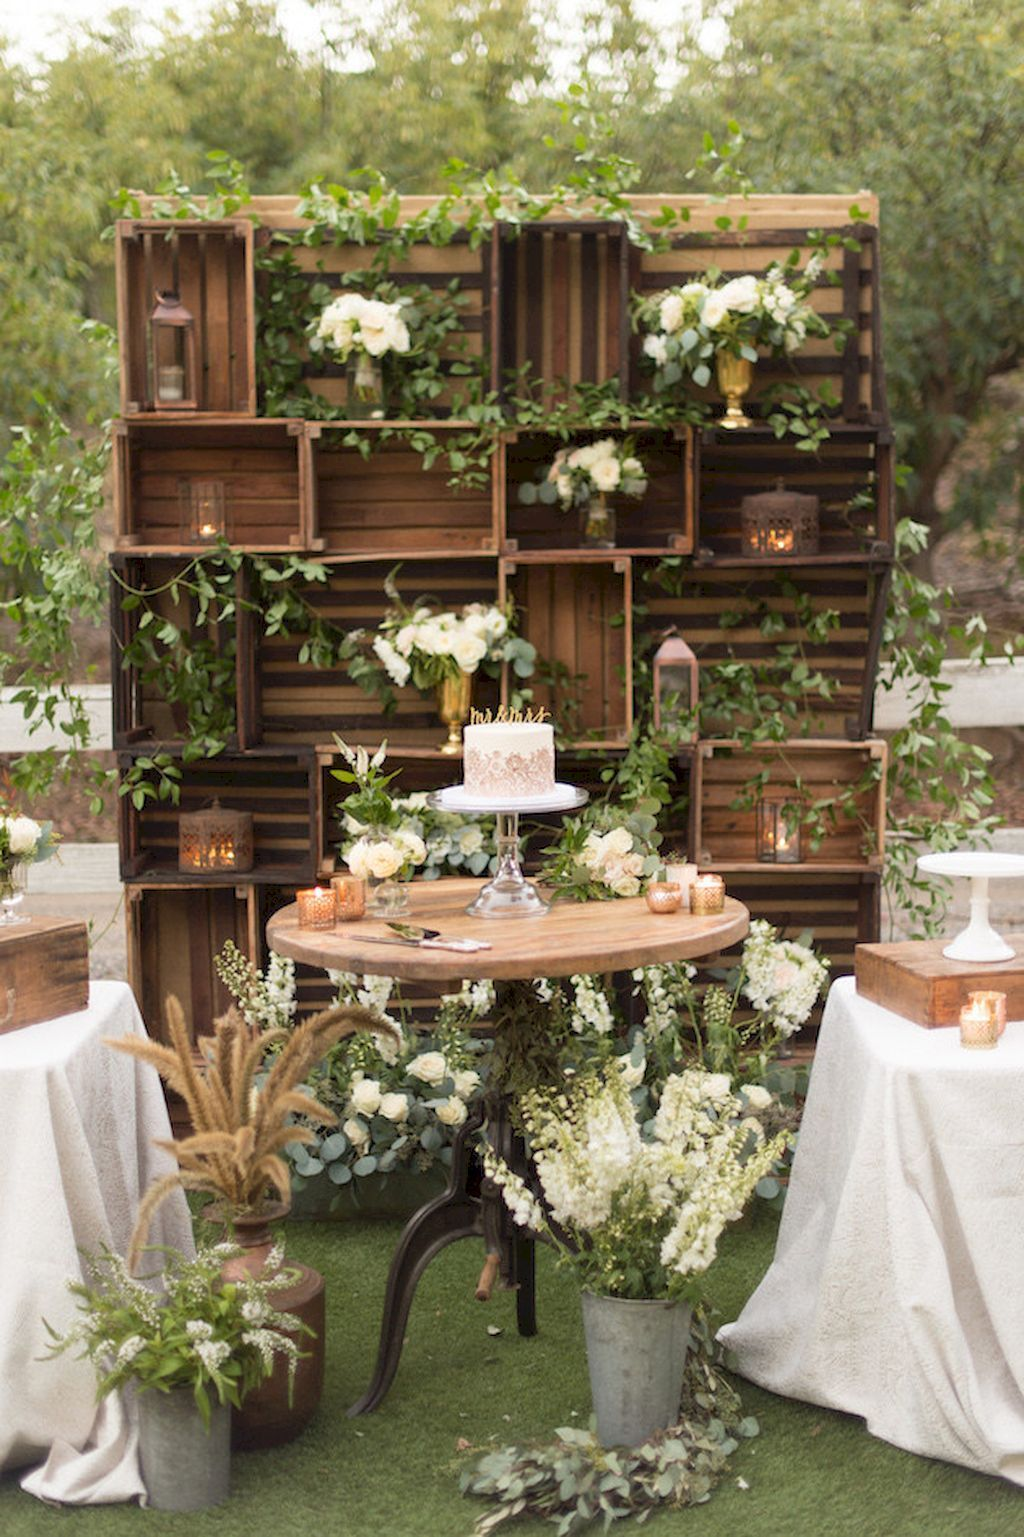 Elegant Outdoor Wedding Decor Ideas On A Budget 39